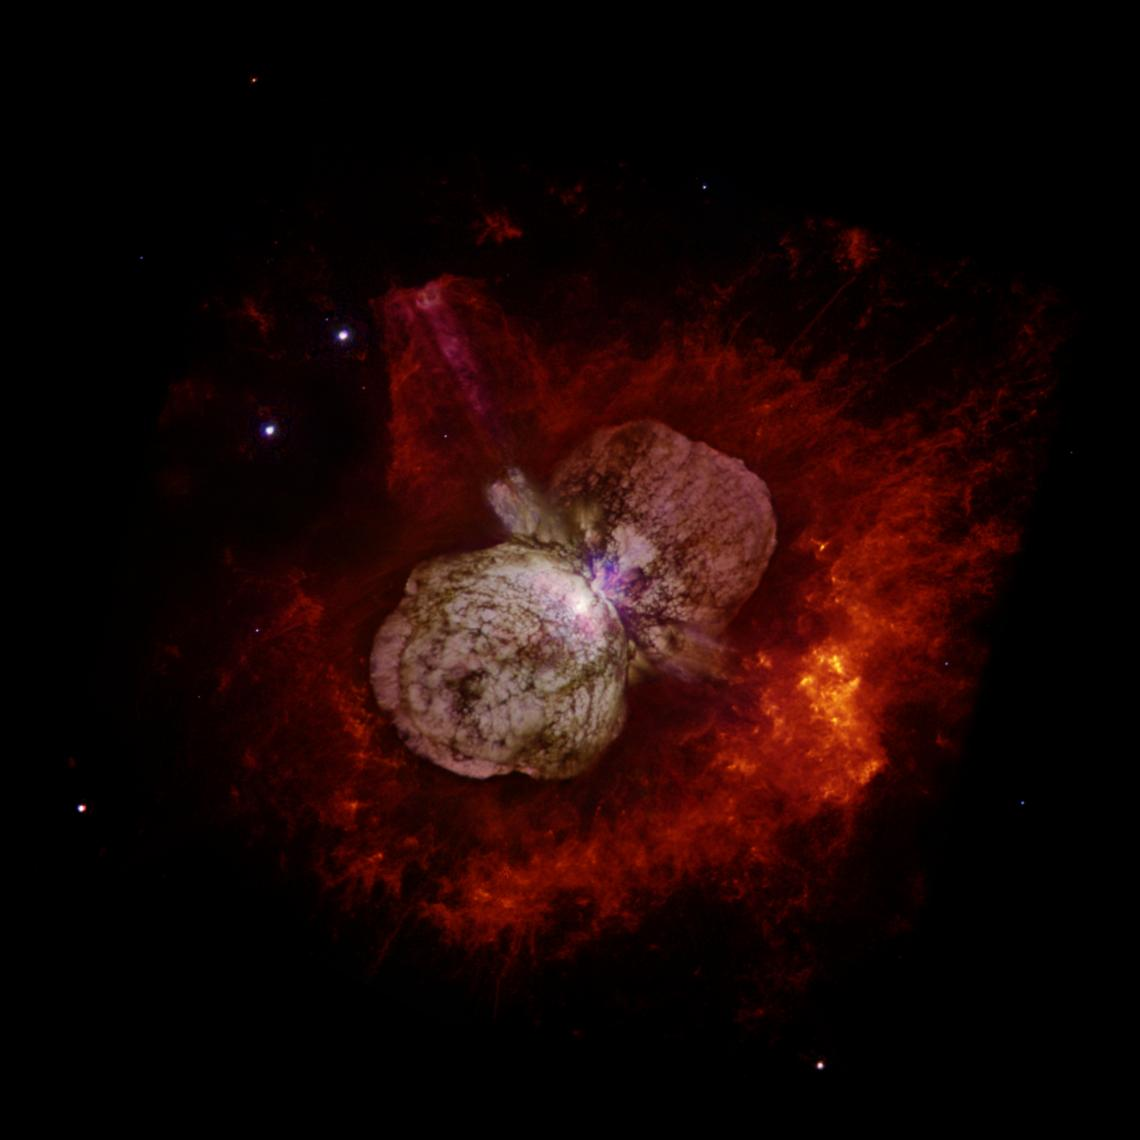 Huge, billowing gas and dust clouds are captured in this stunning NASA Hubble Space Telescope image of the supermassive star Eta Carinae.